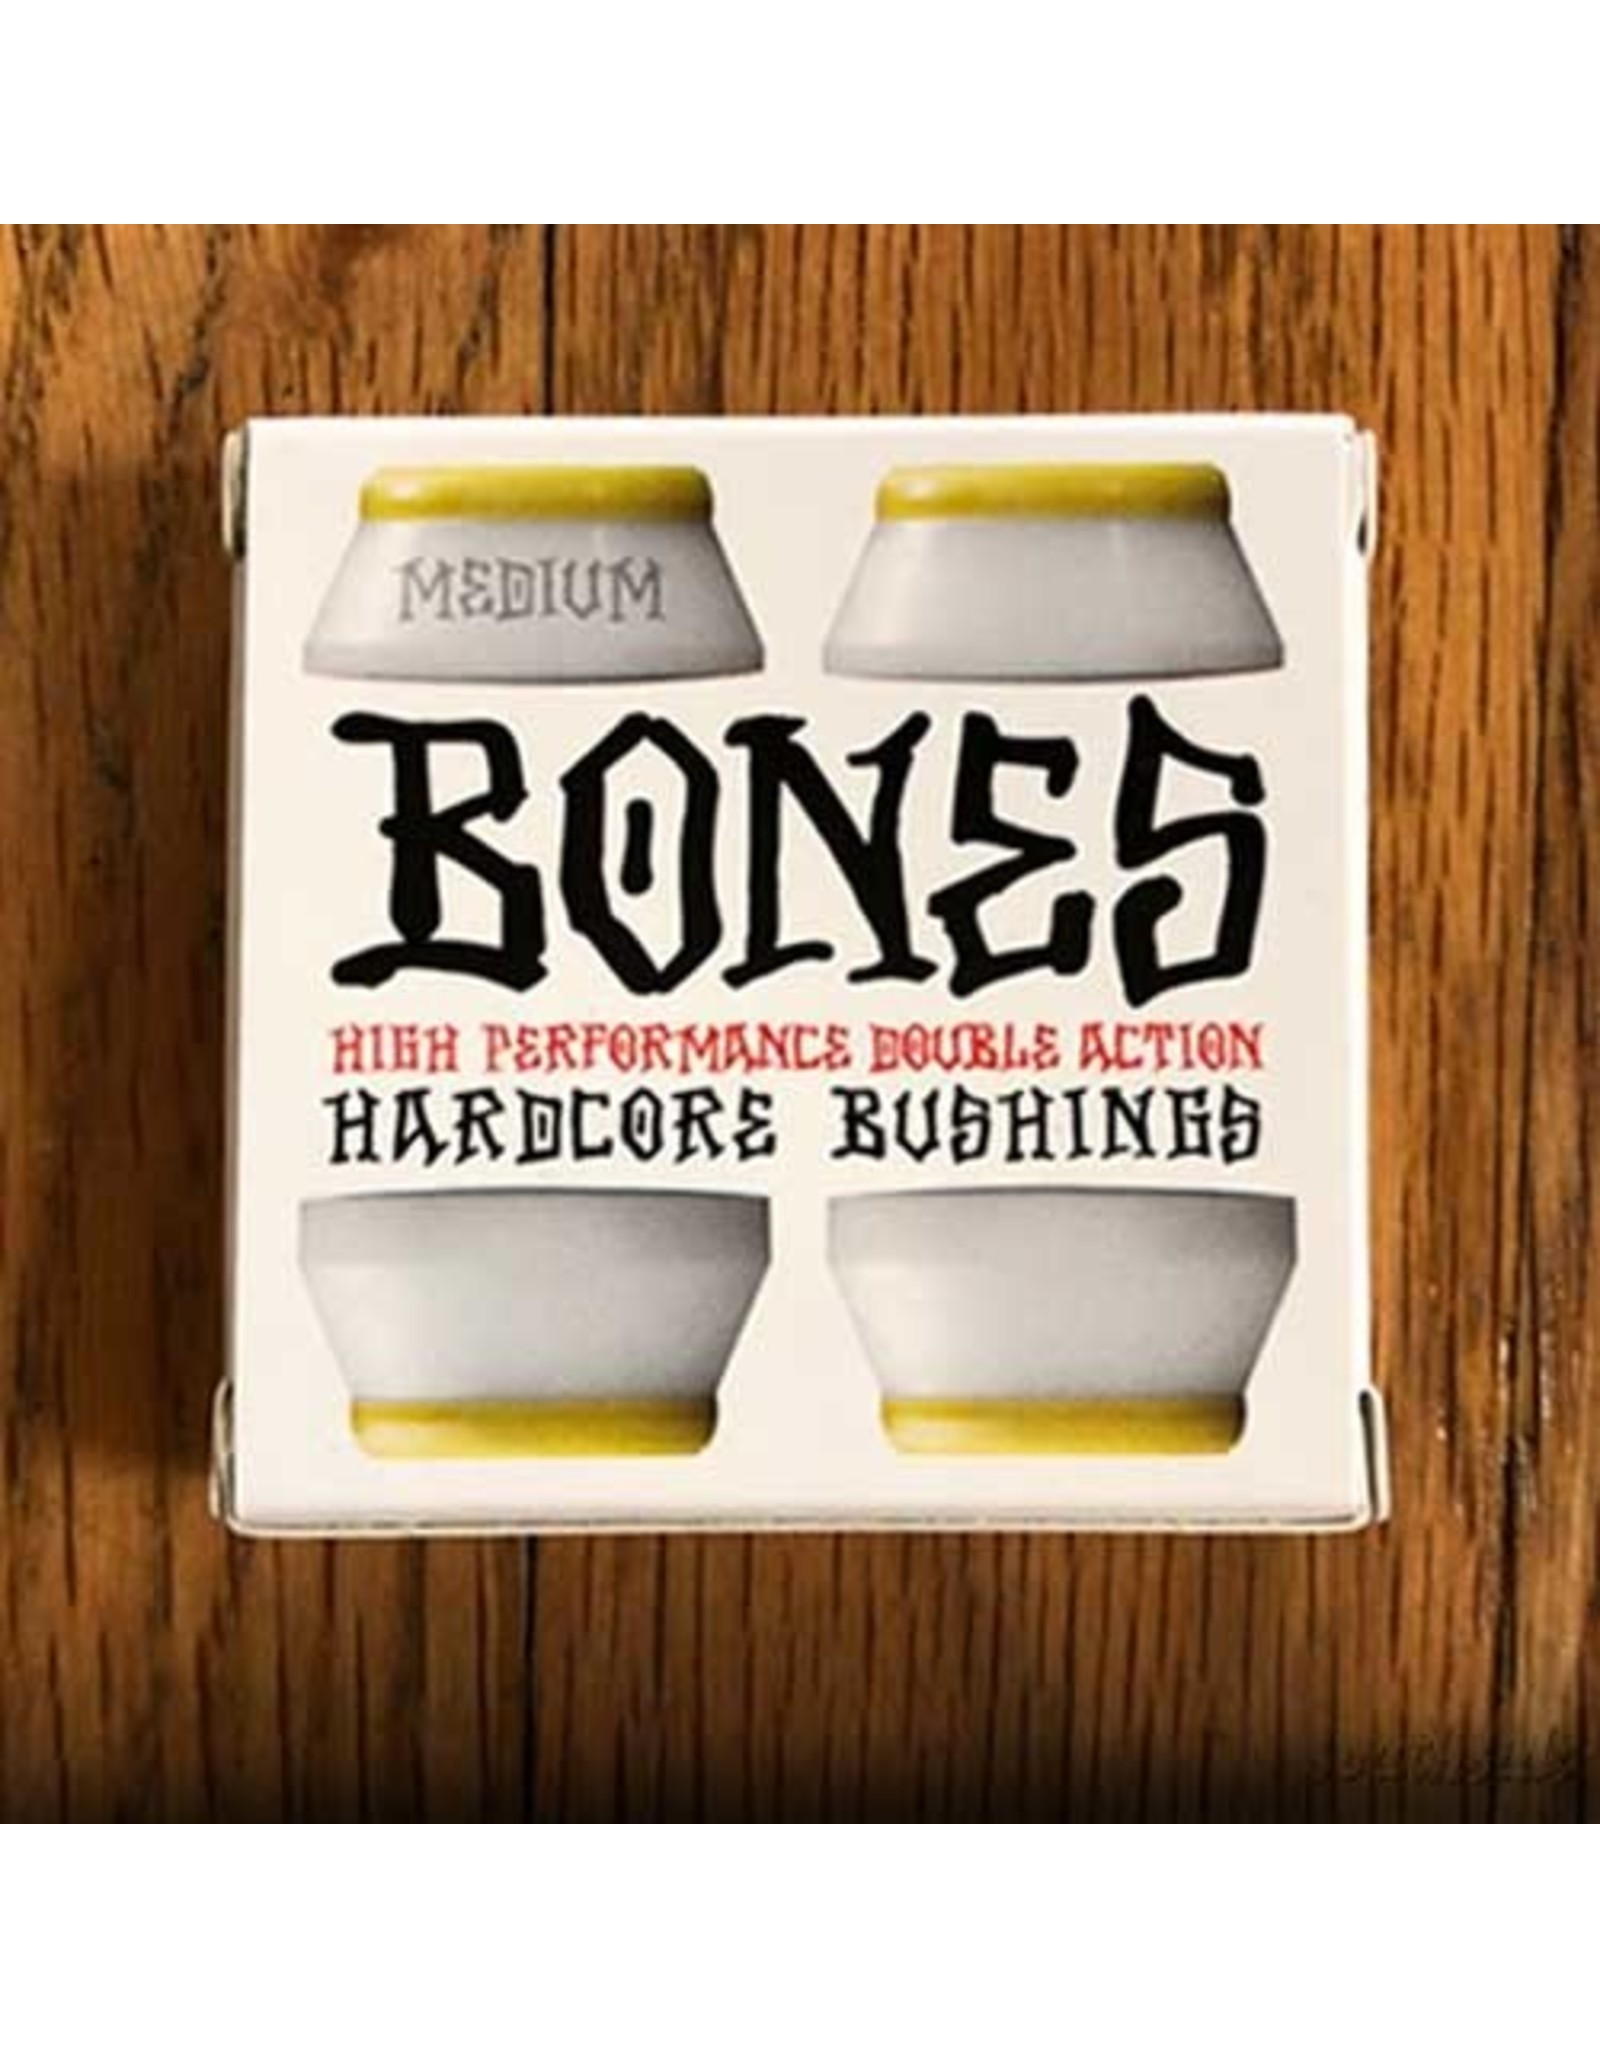 BONES Hardcore Bushing Medium White